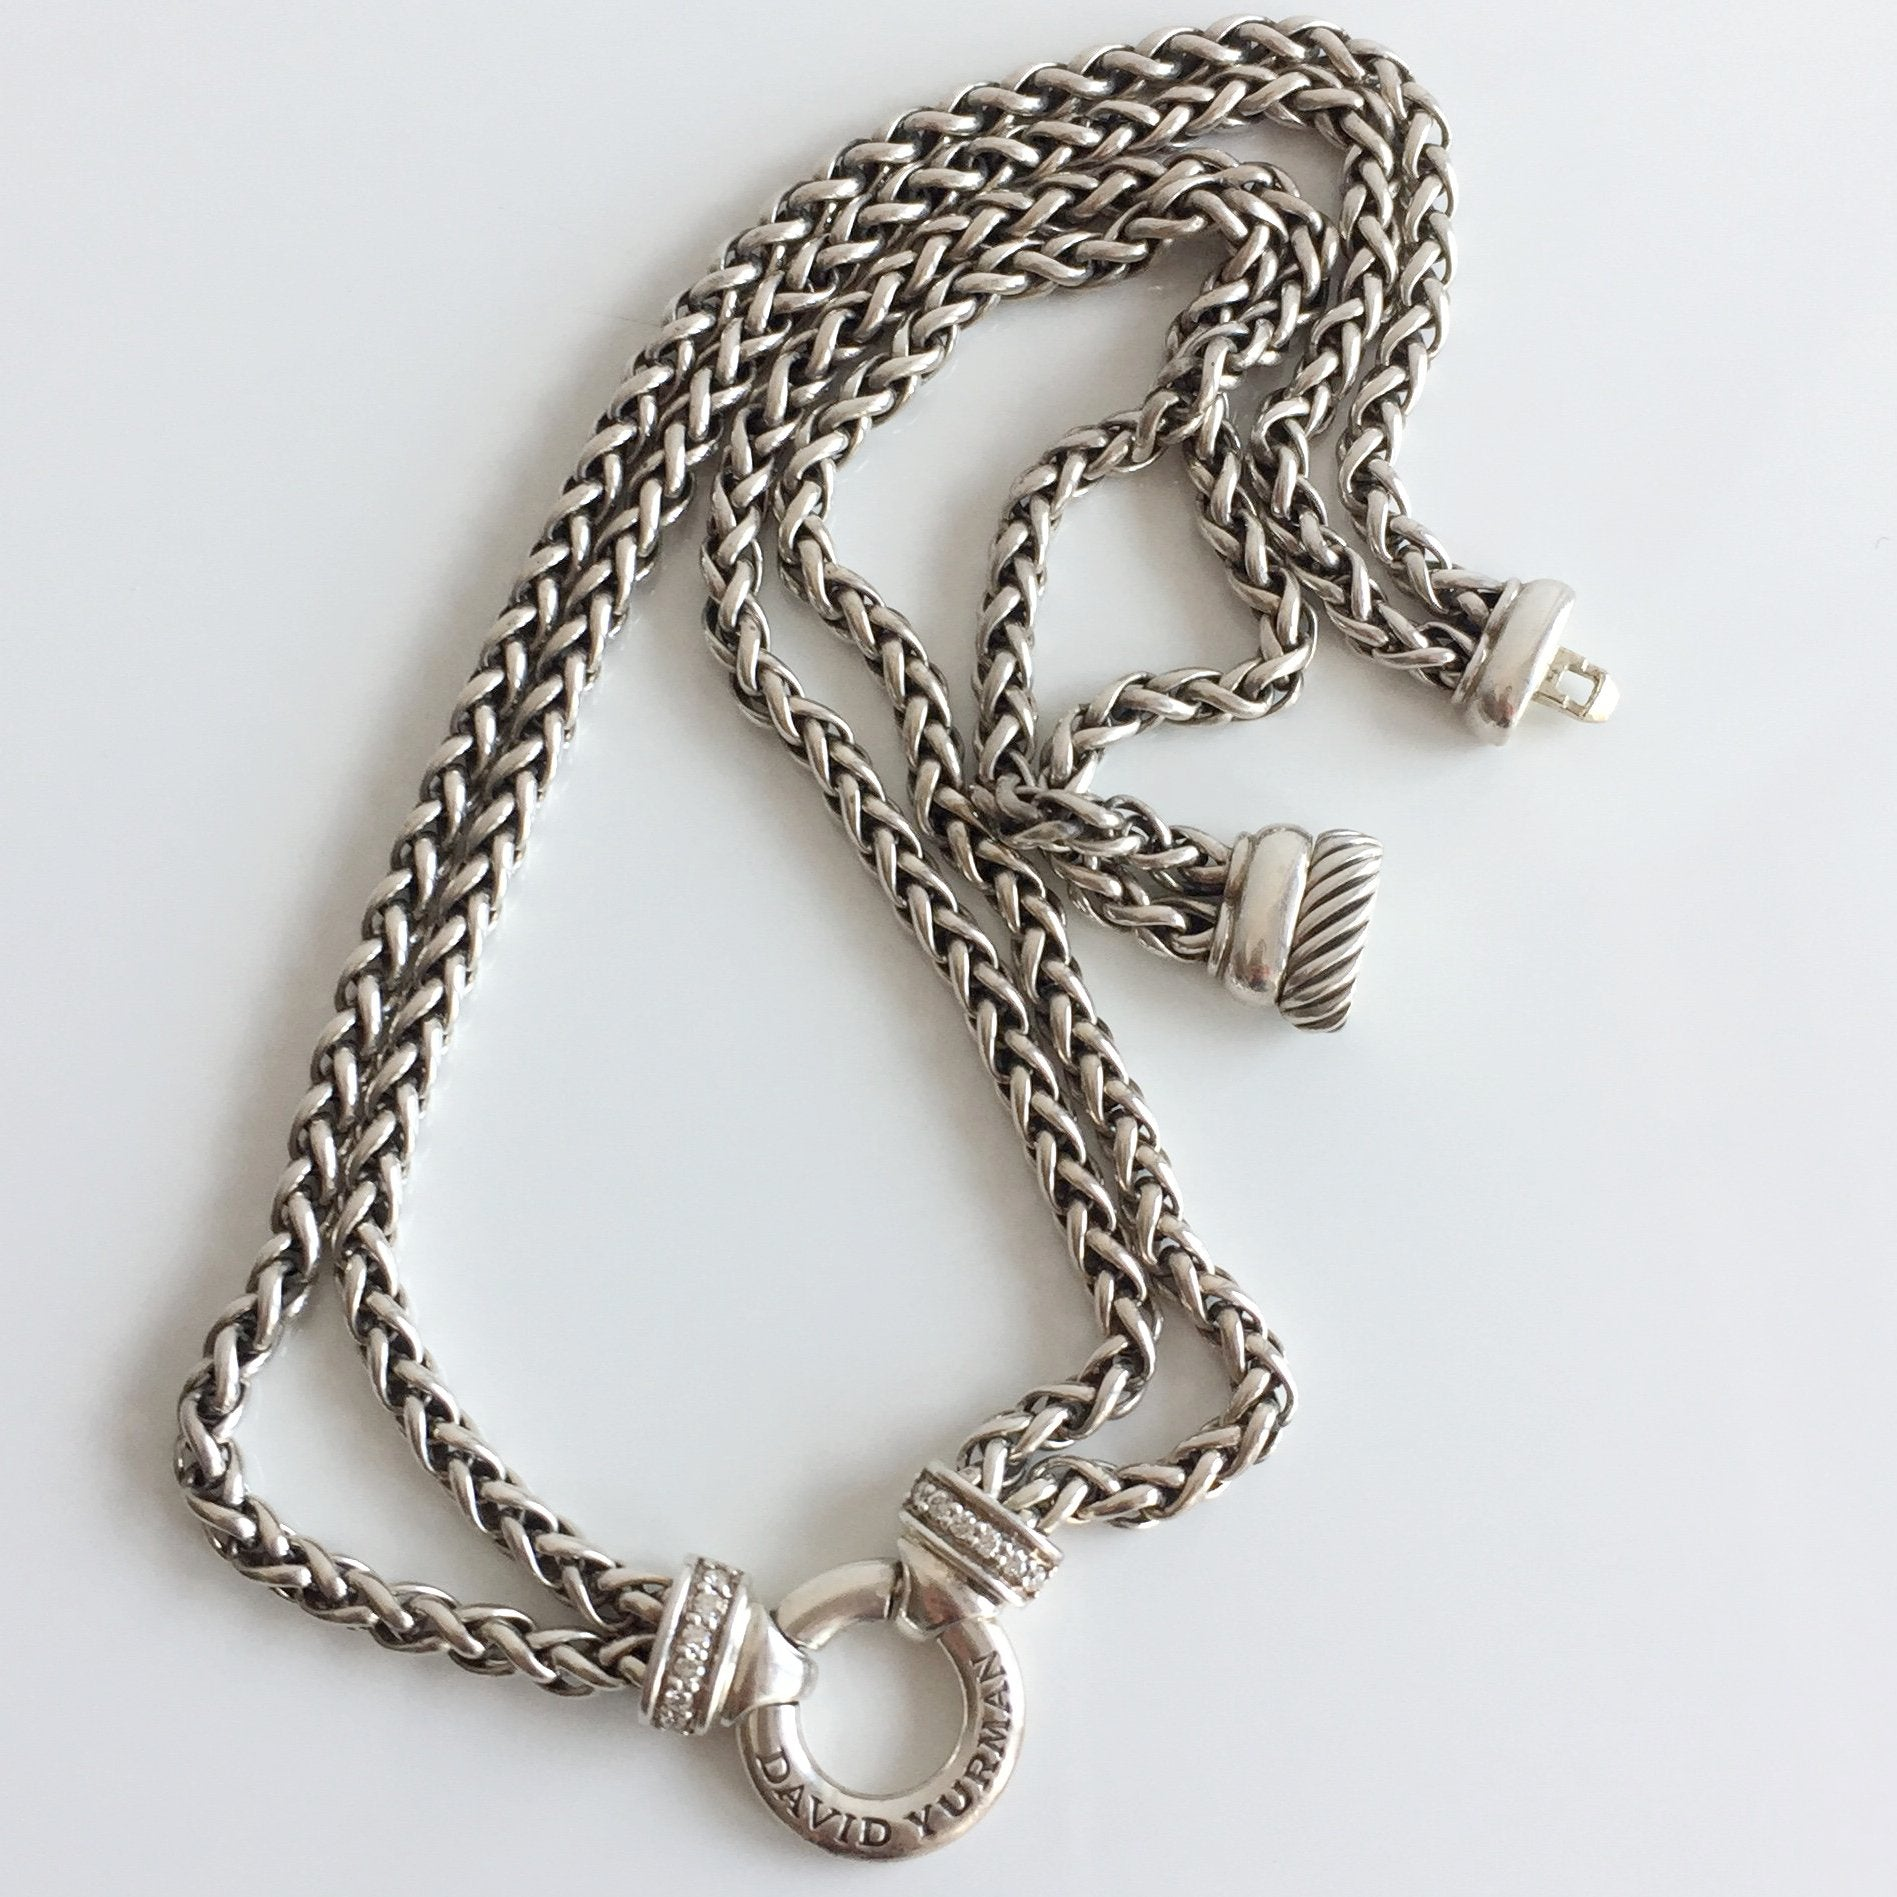 Authentic David Yurman cable necklace